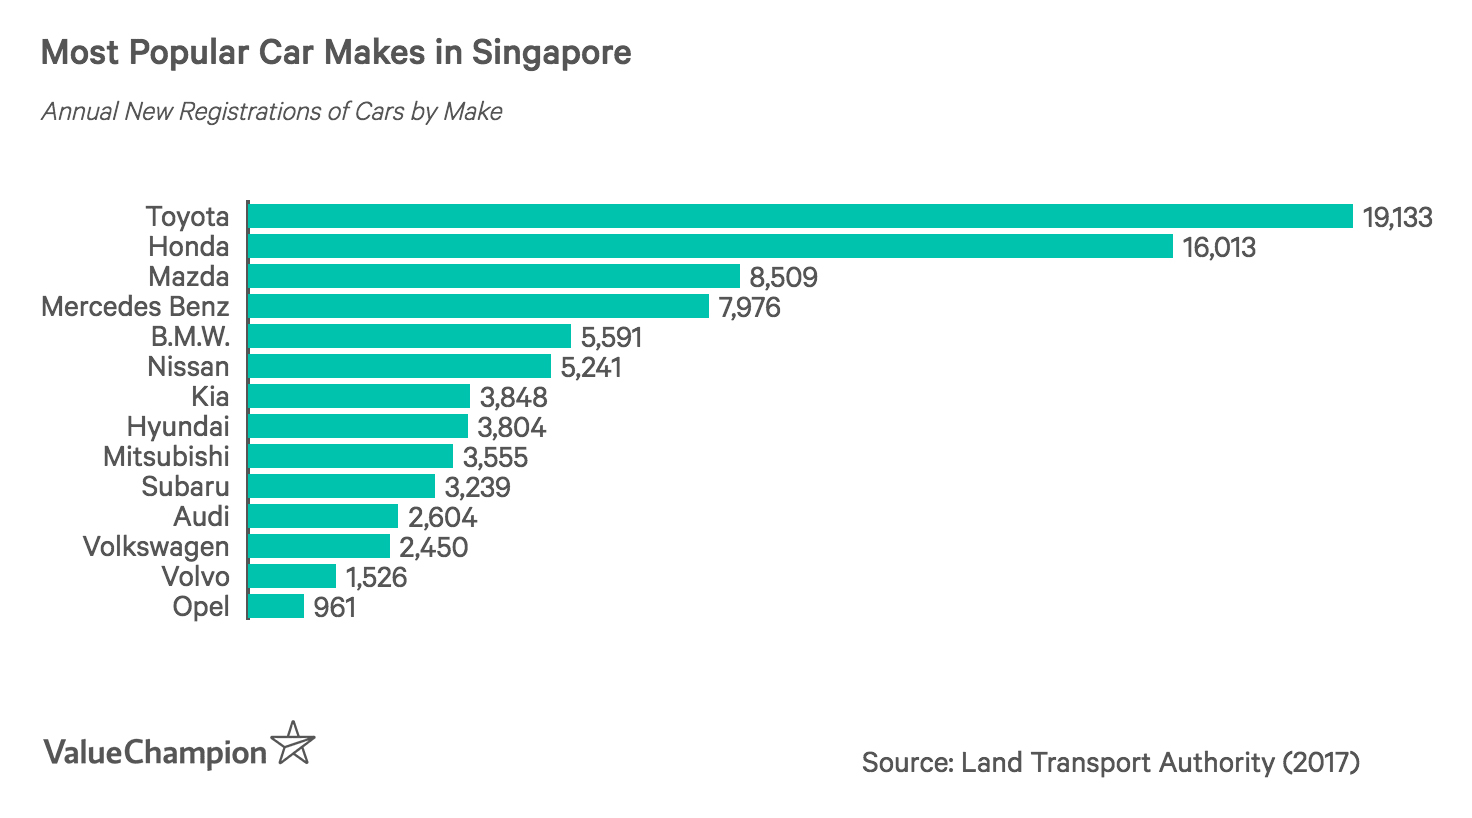 Most Popular Car Makes in Singapore